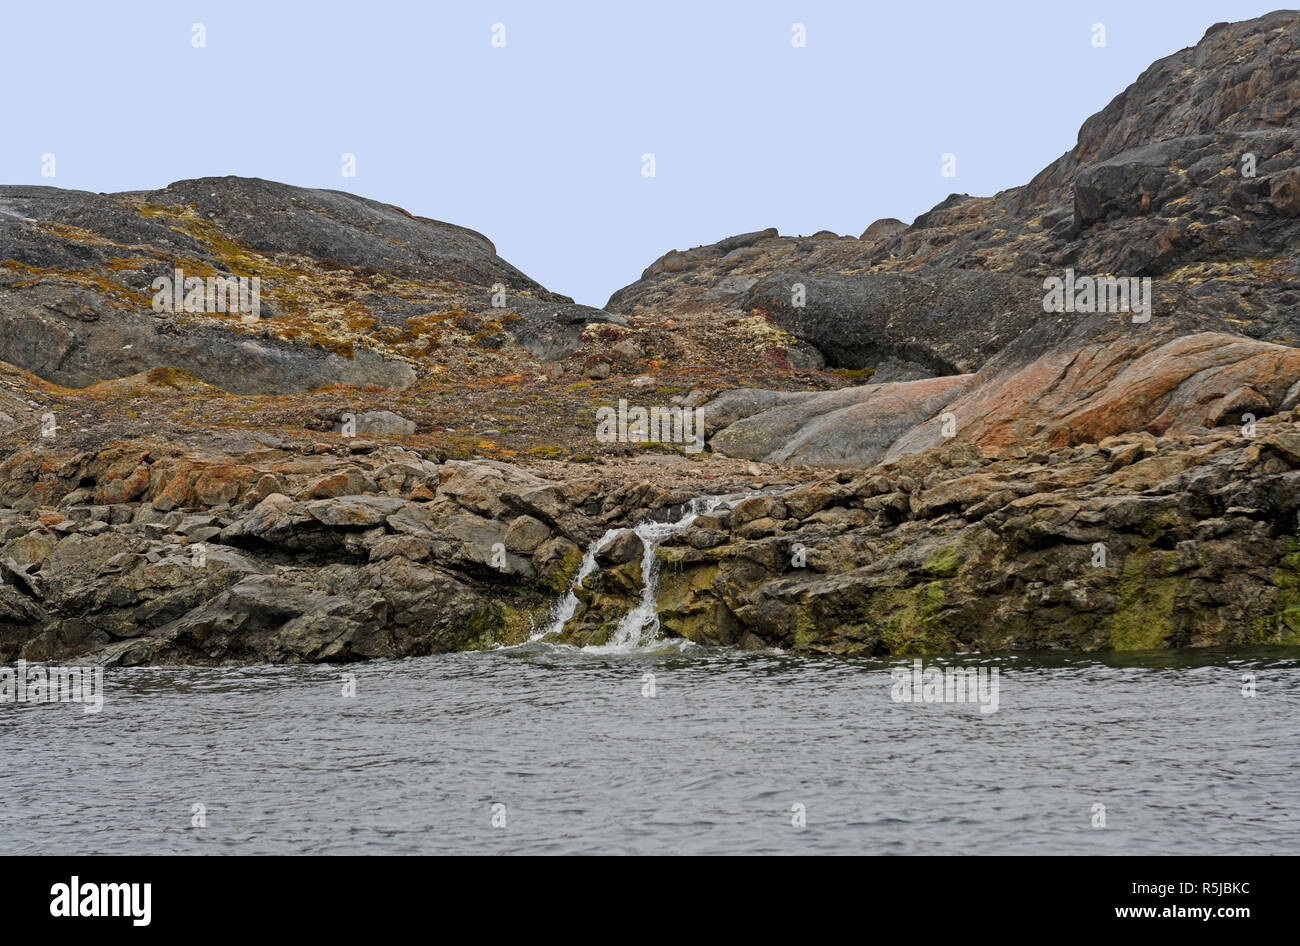 Barren Rock and a Stream in the High Arctic on the Lower Savage Islands on Baffin Island in Nunavut, Canada - Stock Image